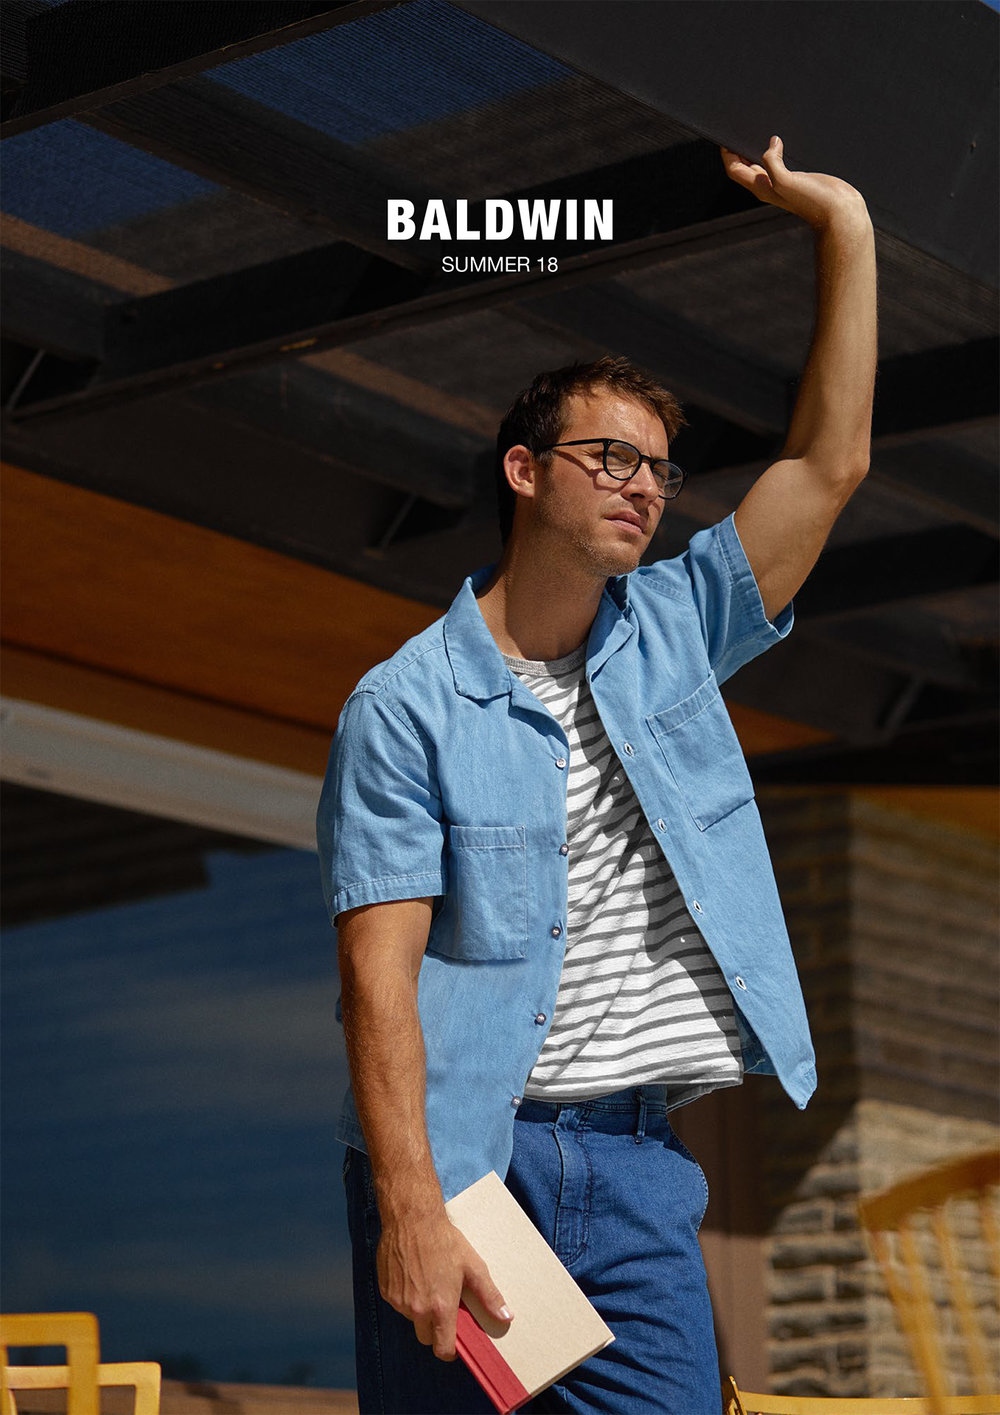 BALDWIN_18SU-MEN-1.jpg